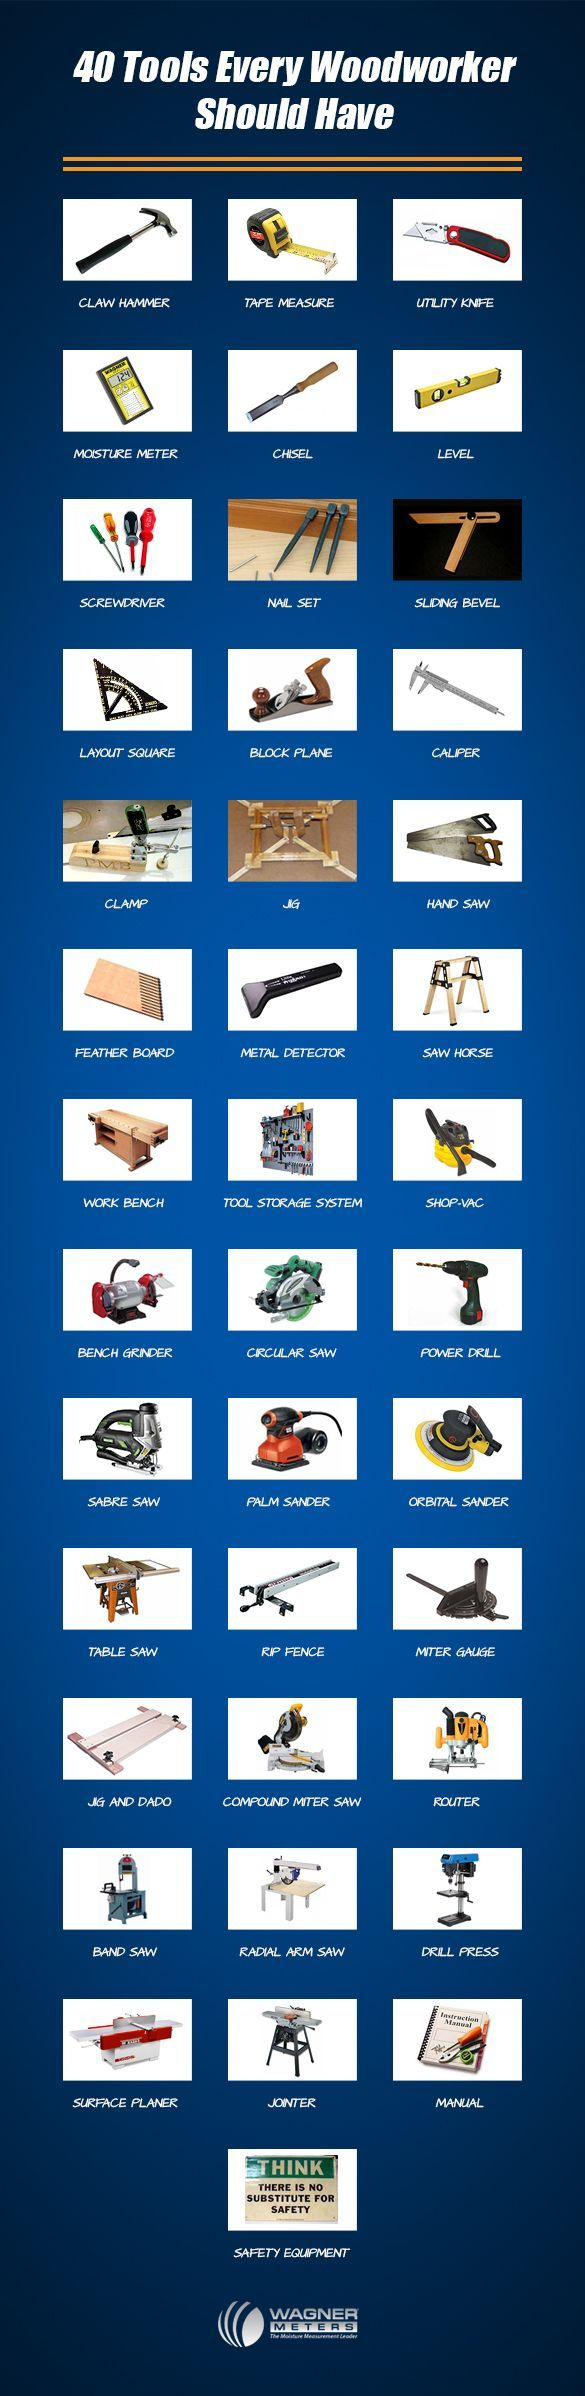 """The holidays are coming! Need something to buy your favorite woodworker? Check out our Top 40 Woodworking Tools list. 